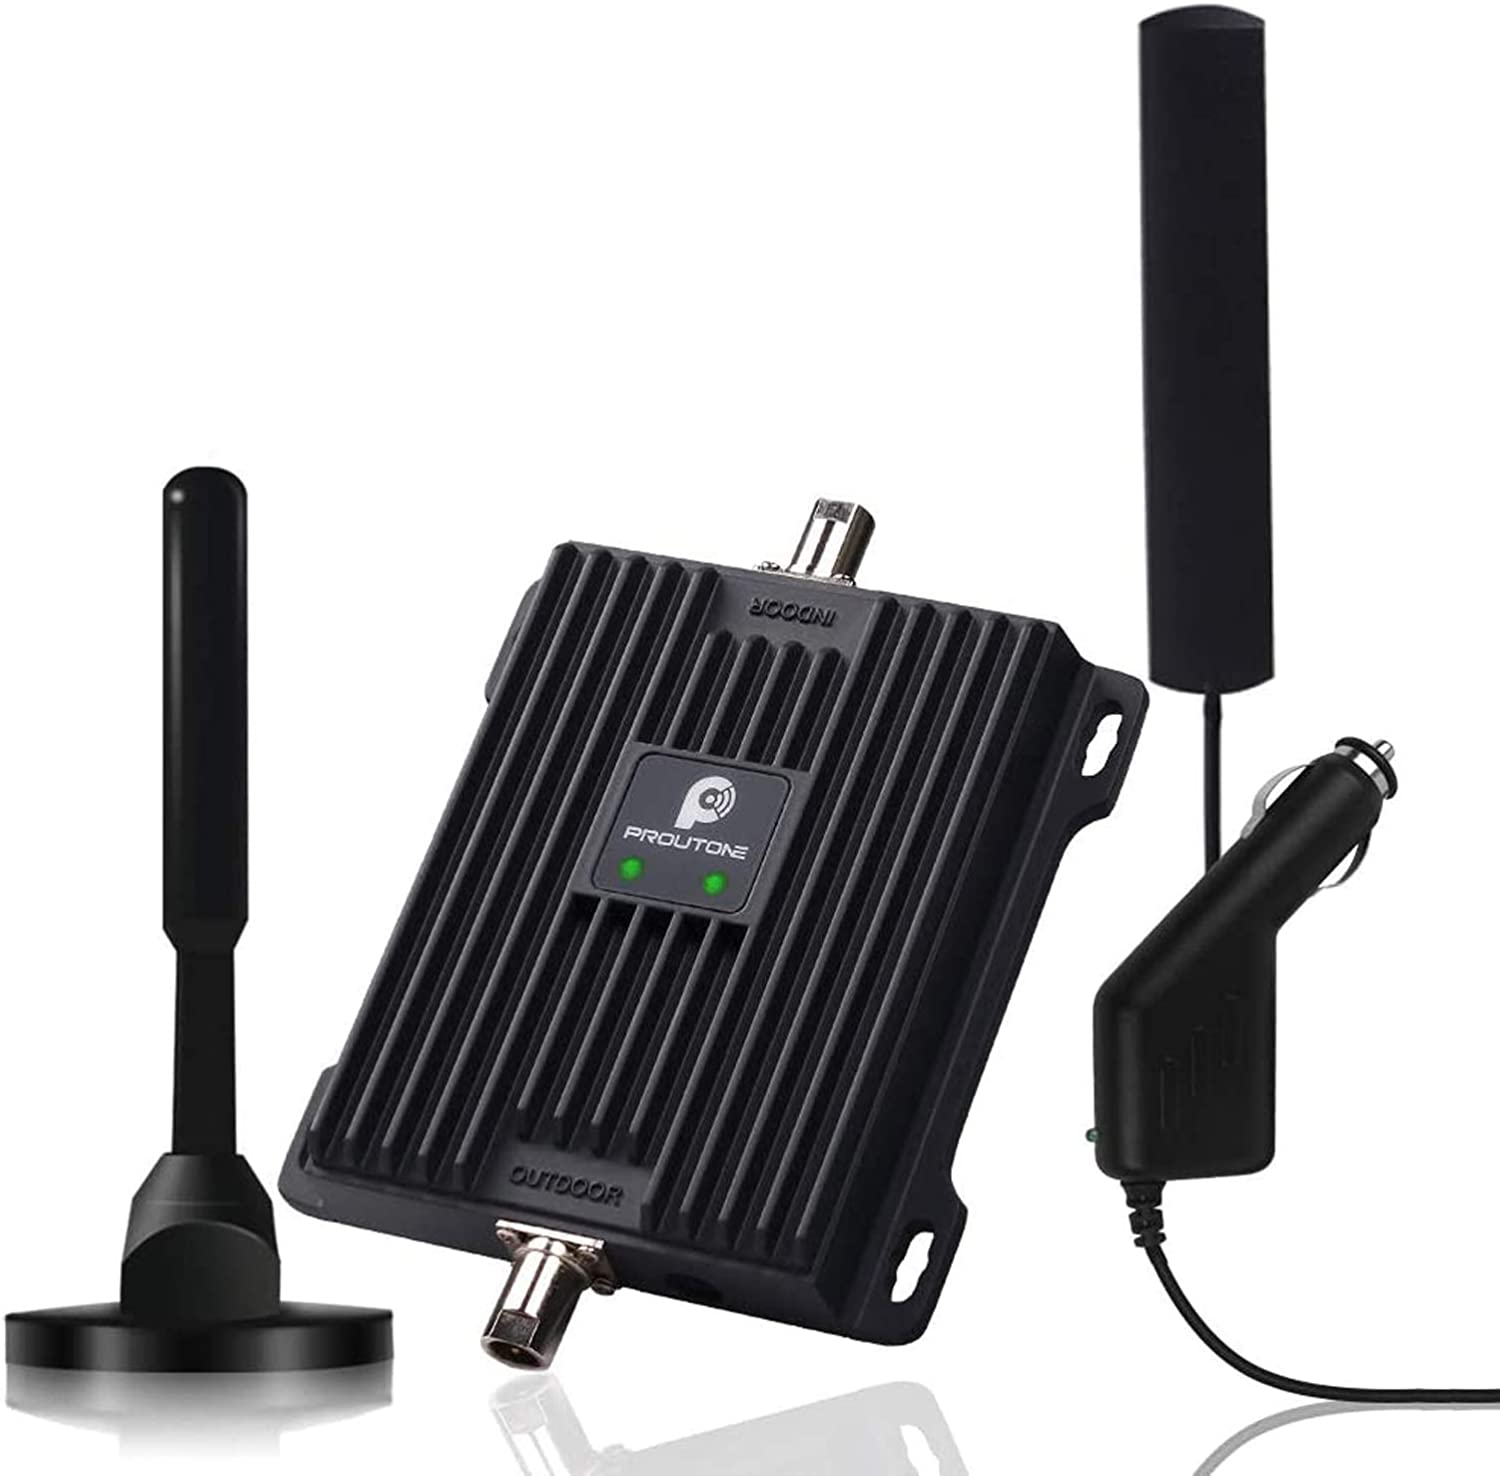 GSM 3G 4G LTE Data and Voice Signal Repeater Cellular Amplifier for Verizon AT/&T T-Mobile US Cellular Sprint and More 5 Bands Cell Phone Signal Booster for RV Motorhome Trailer Camper Cabin Vehicle